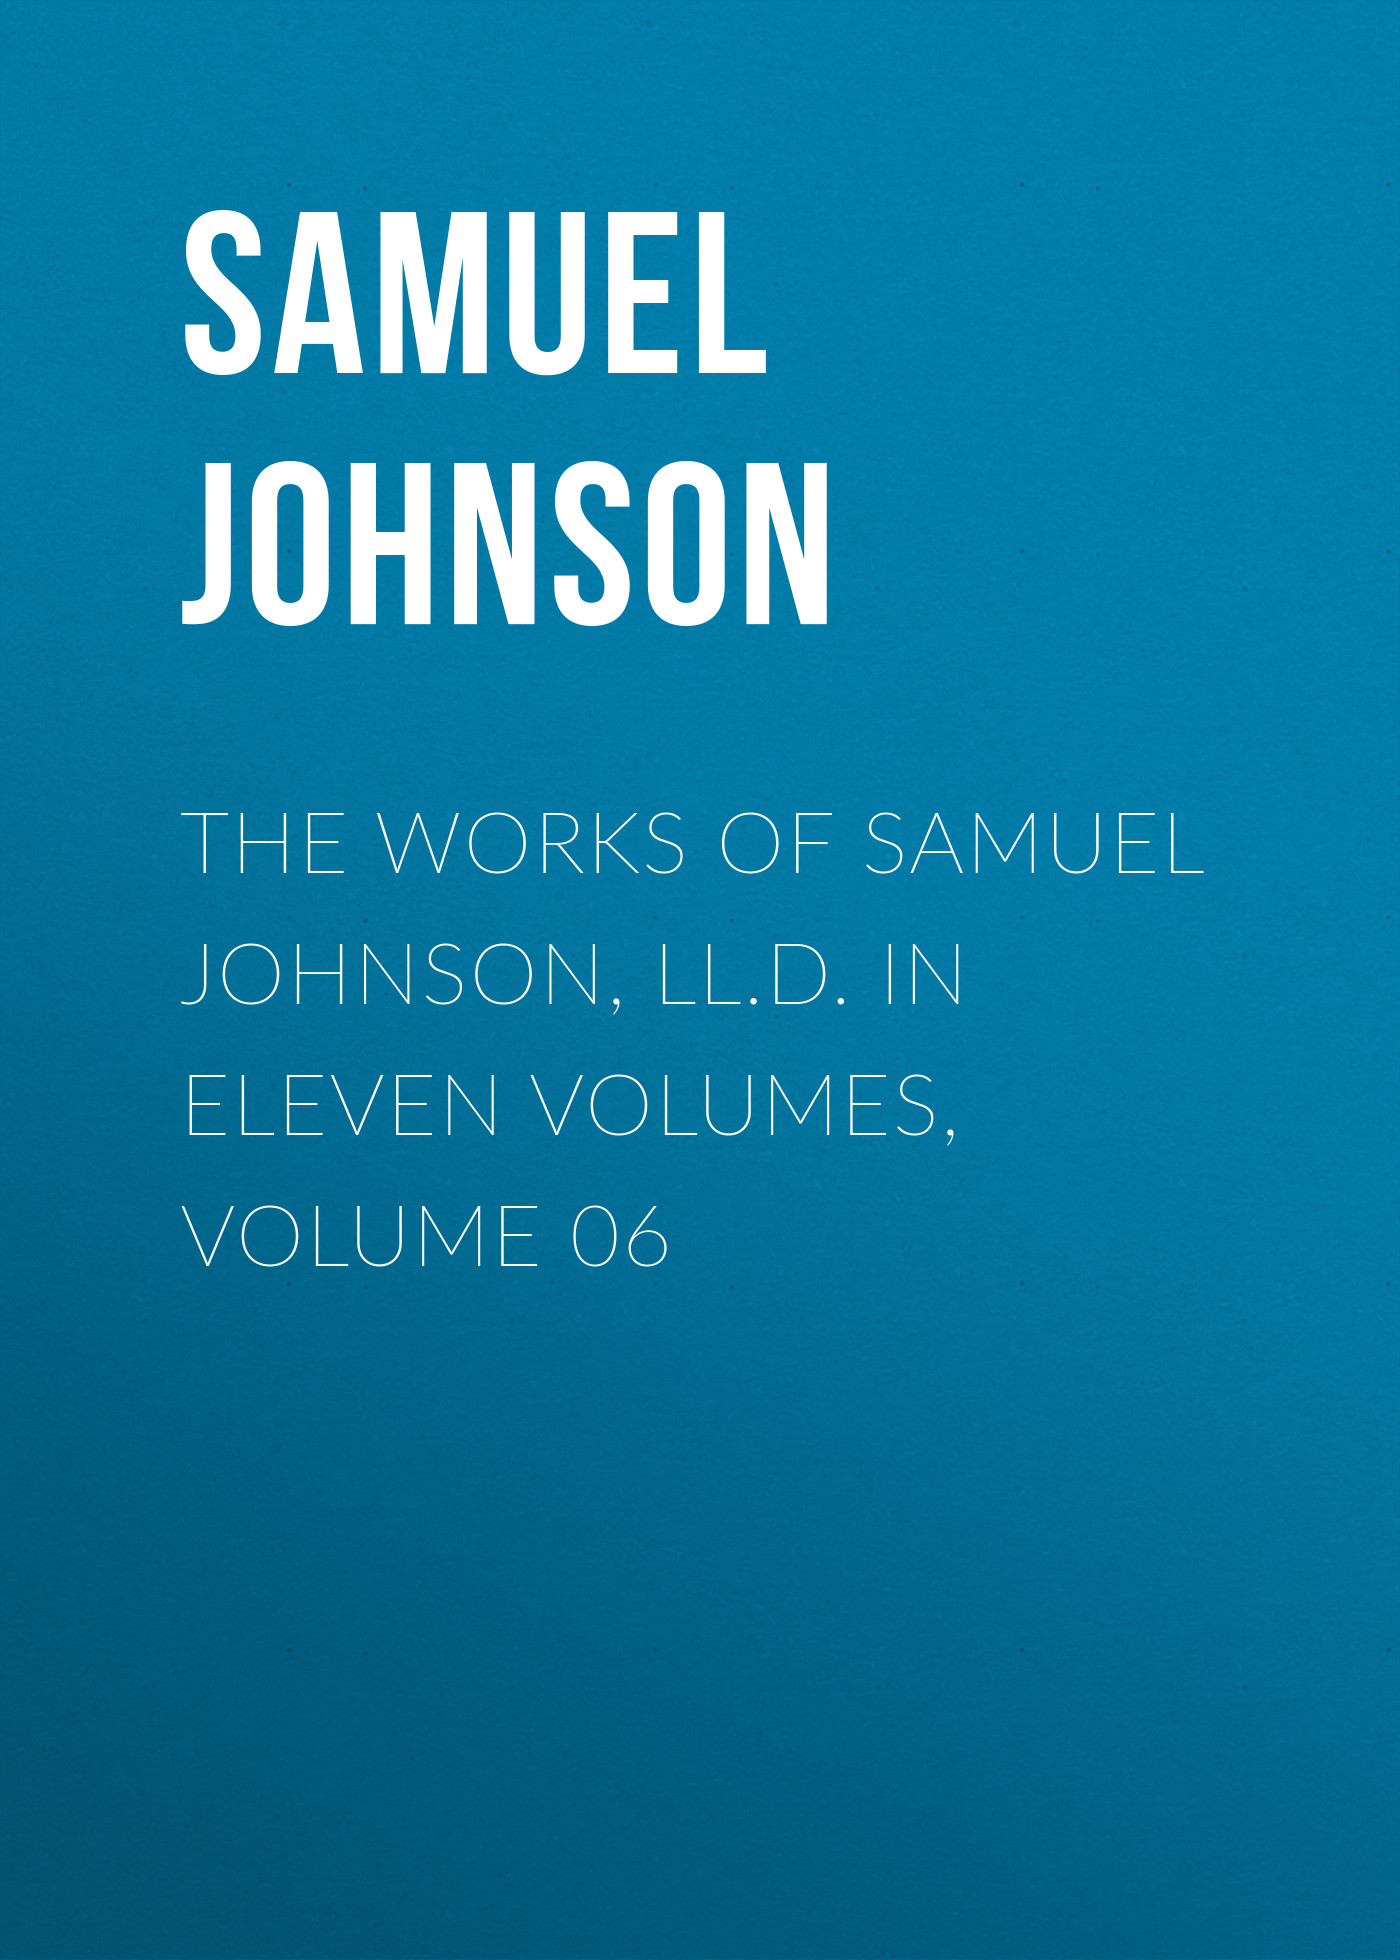 Samuel Johnson The Works of Samuel Johnson, LL.D. in Eleven Volumes, Volume 06 все цены